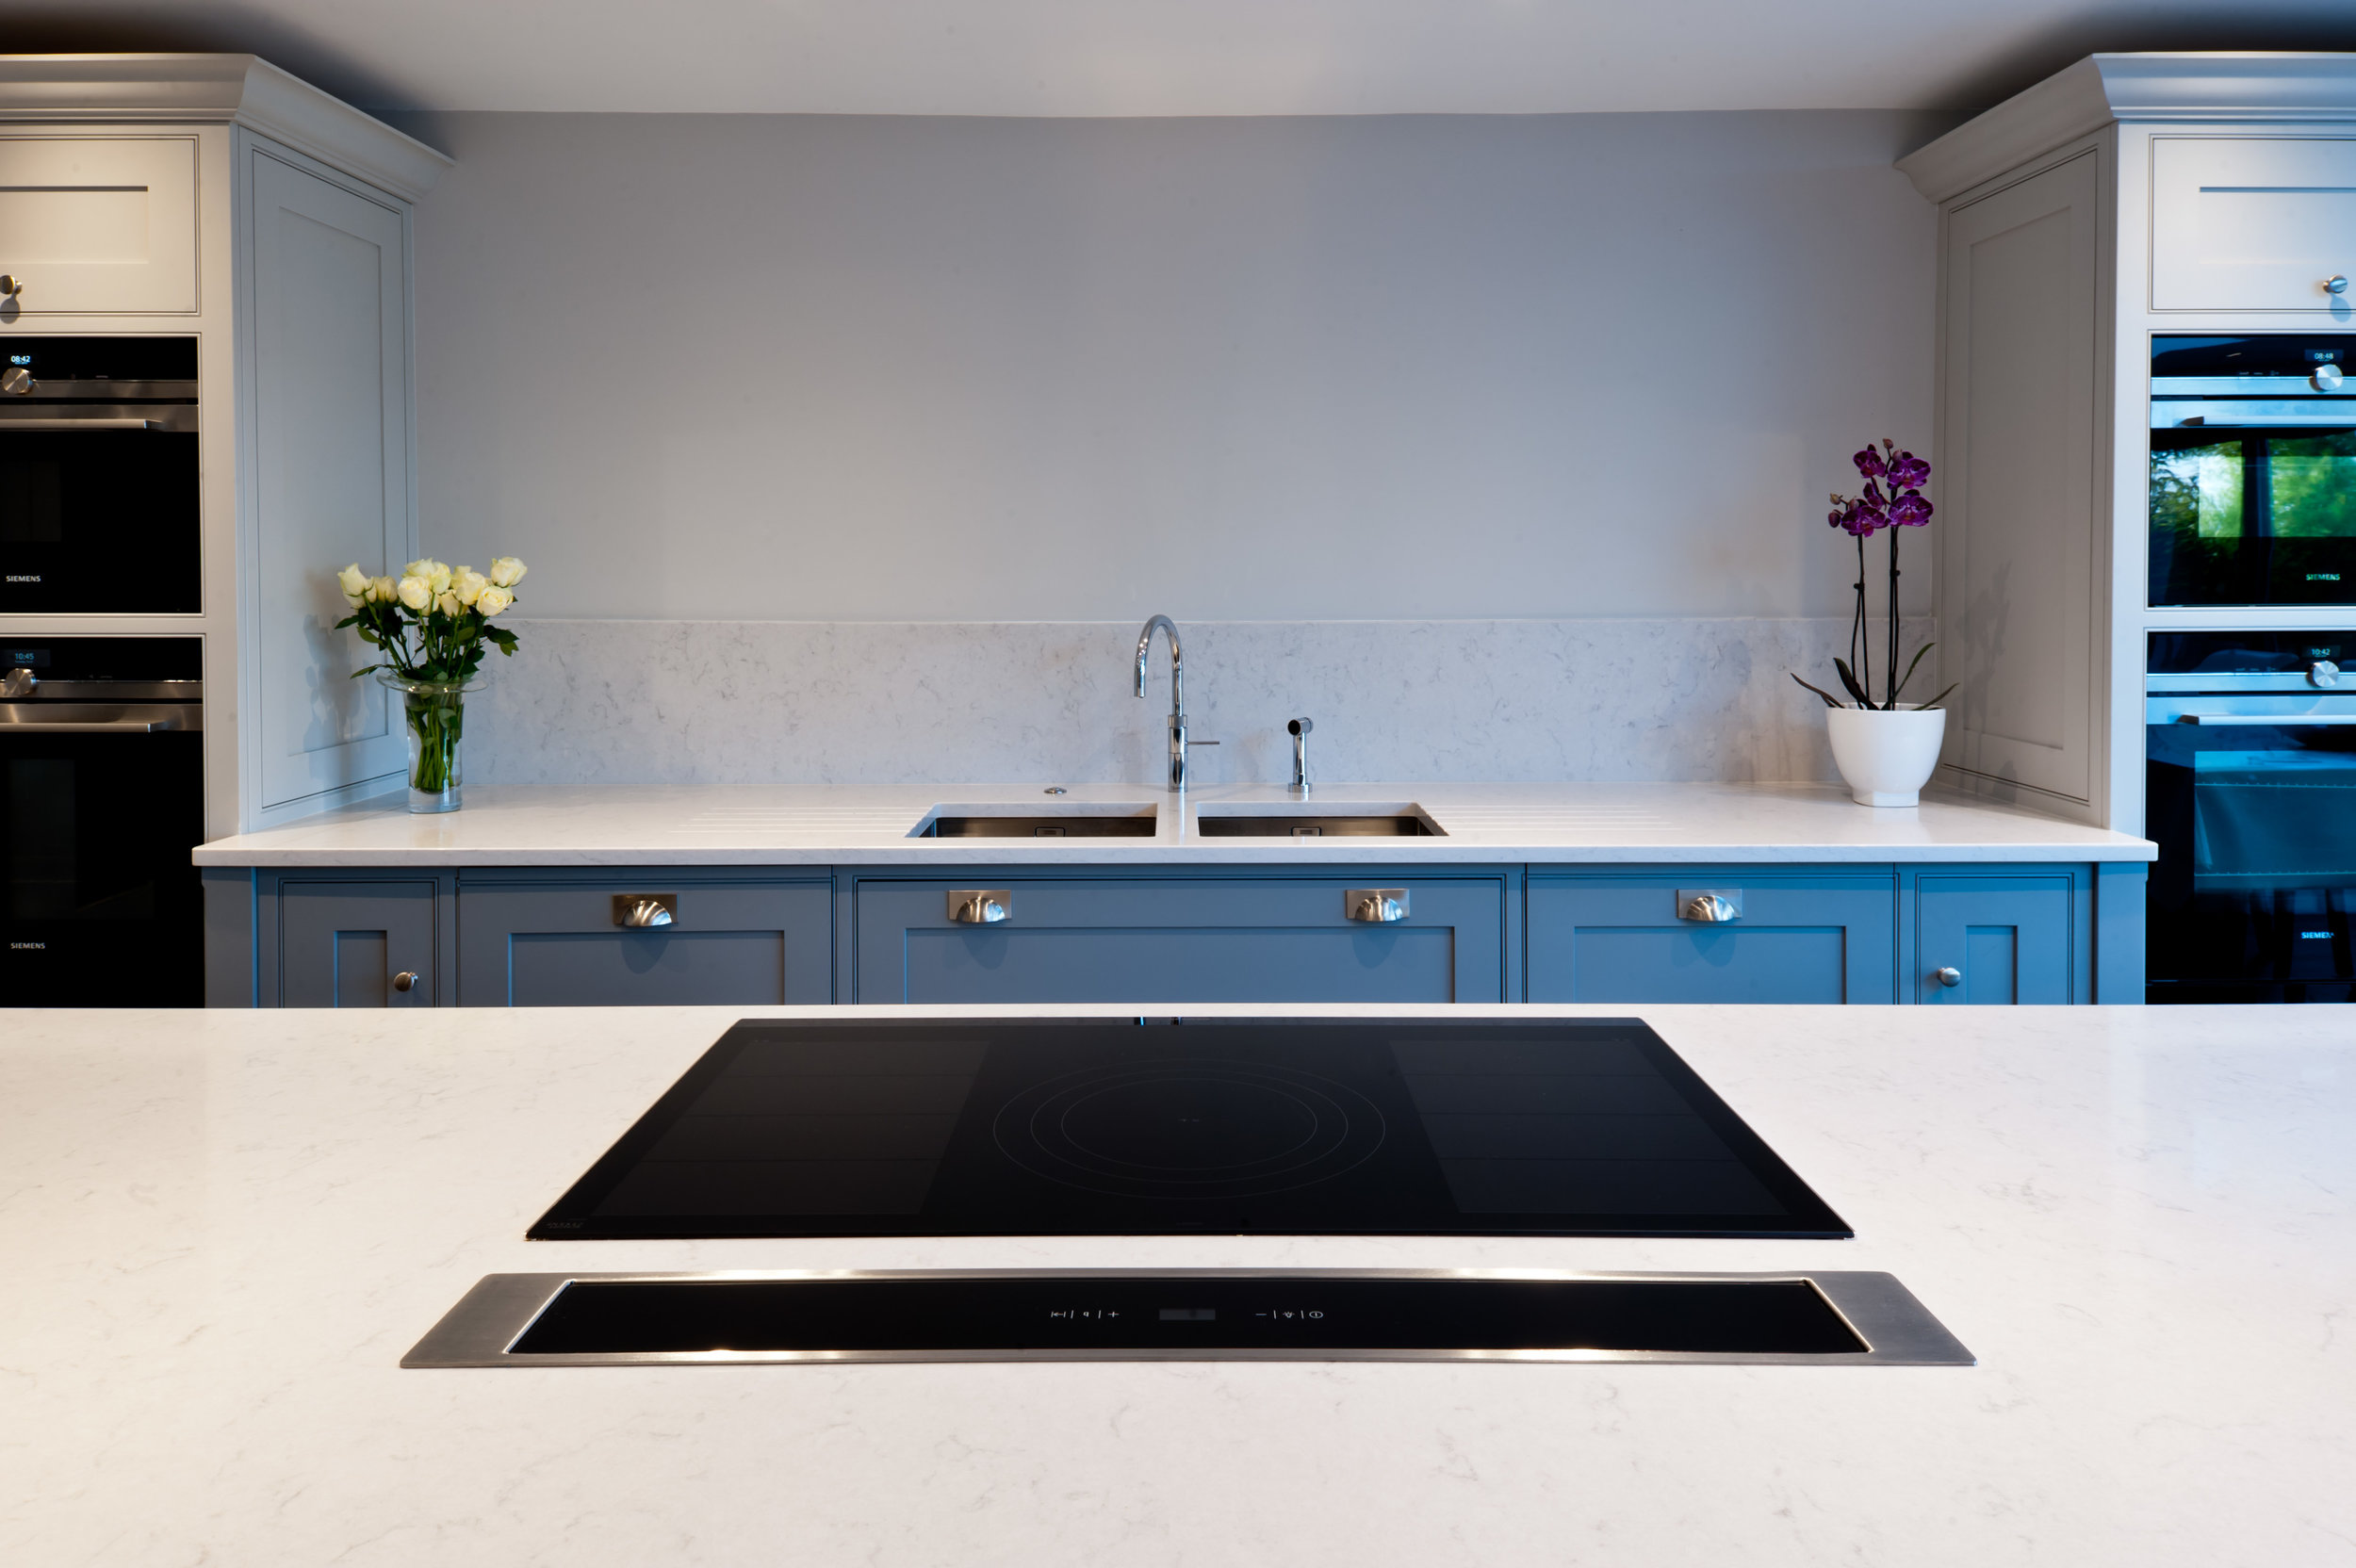 west kingsdown kitchen - quartz